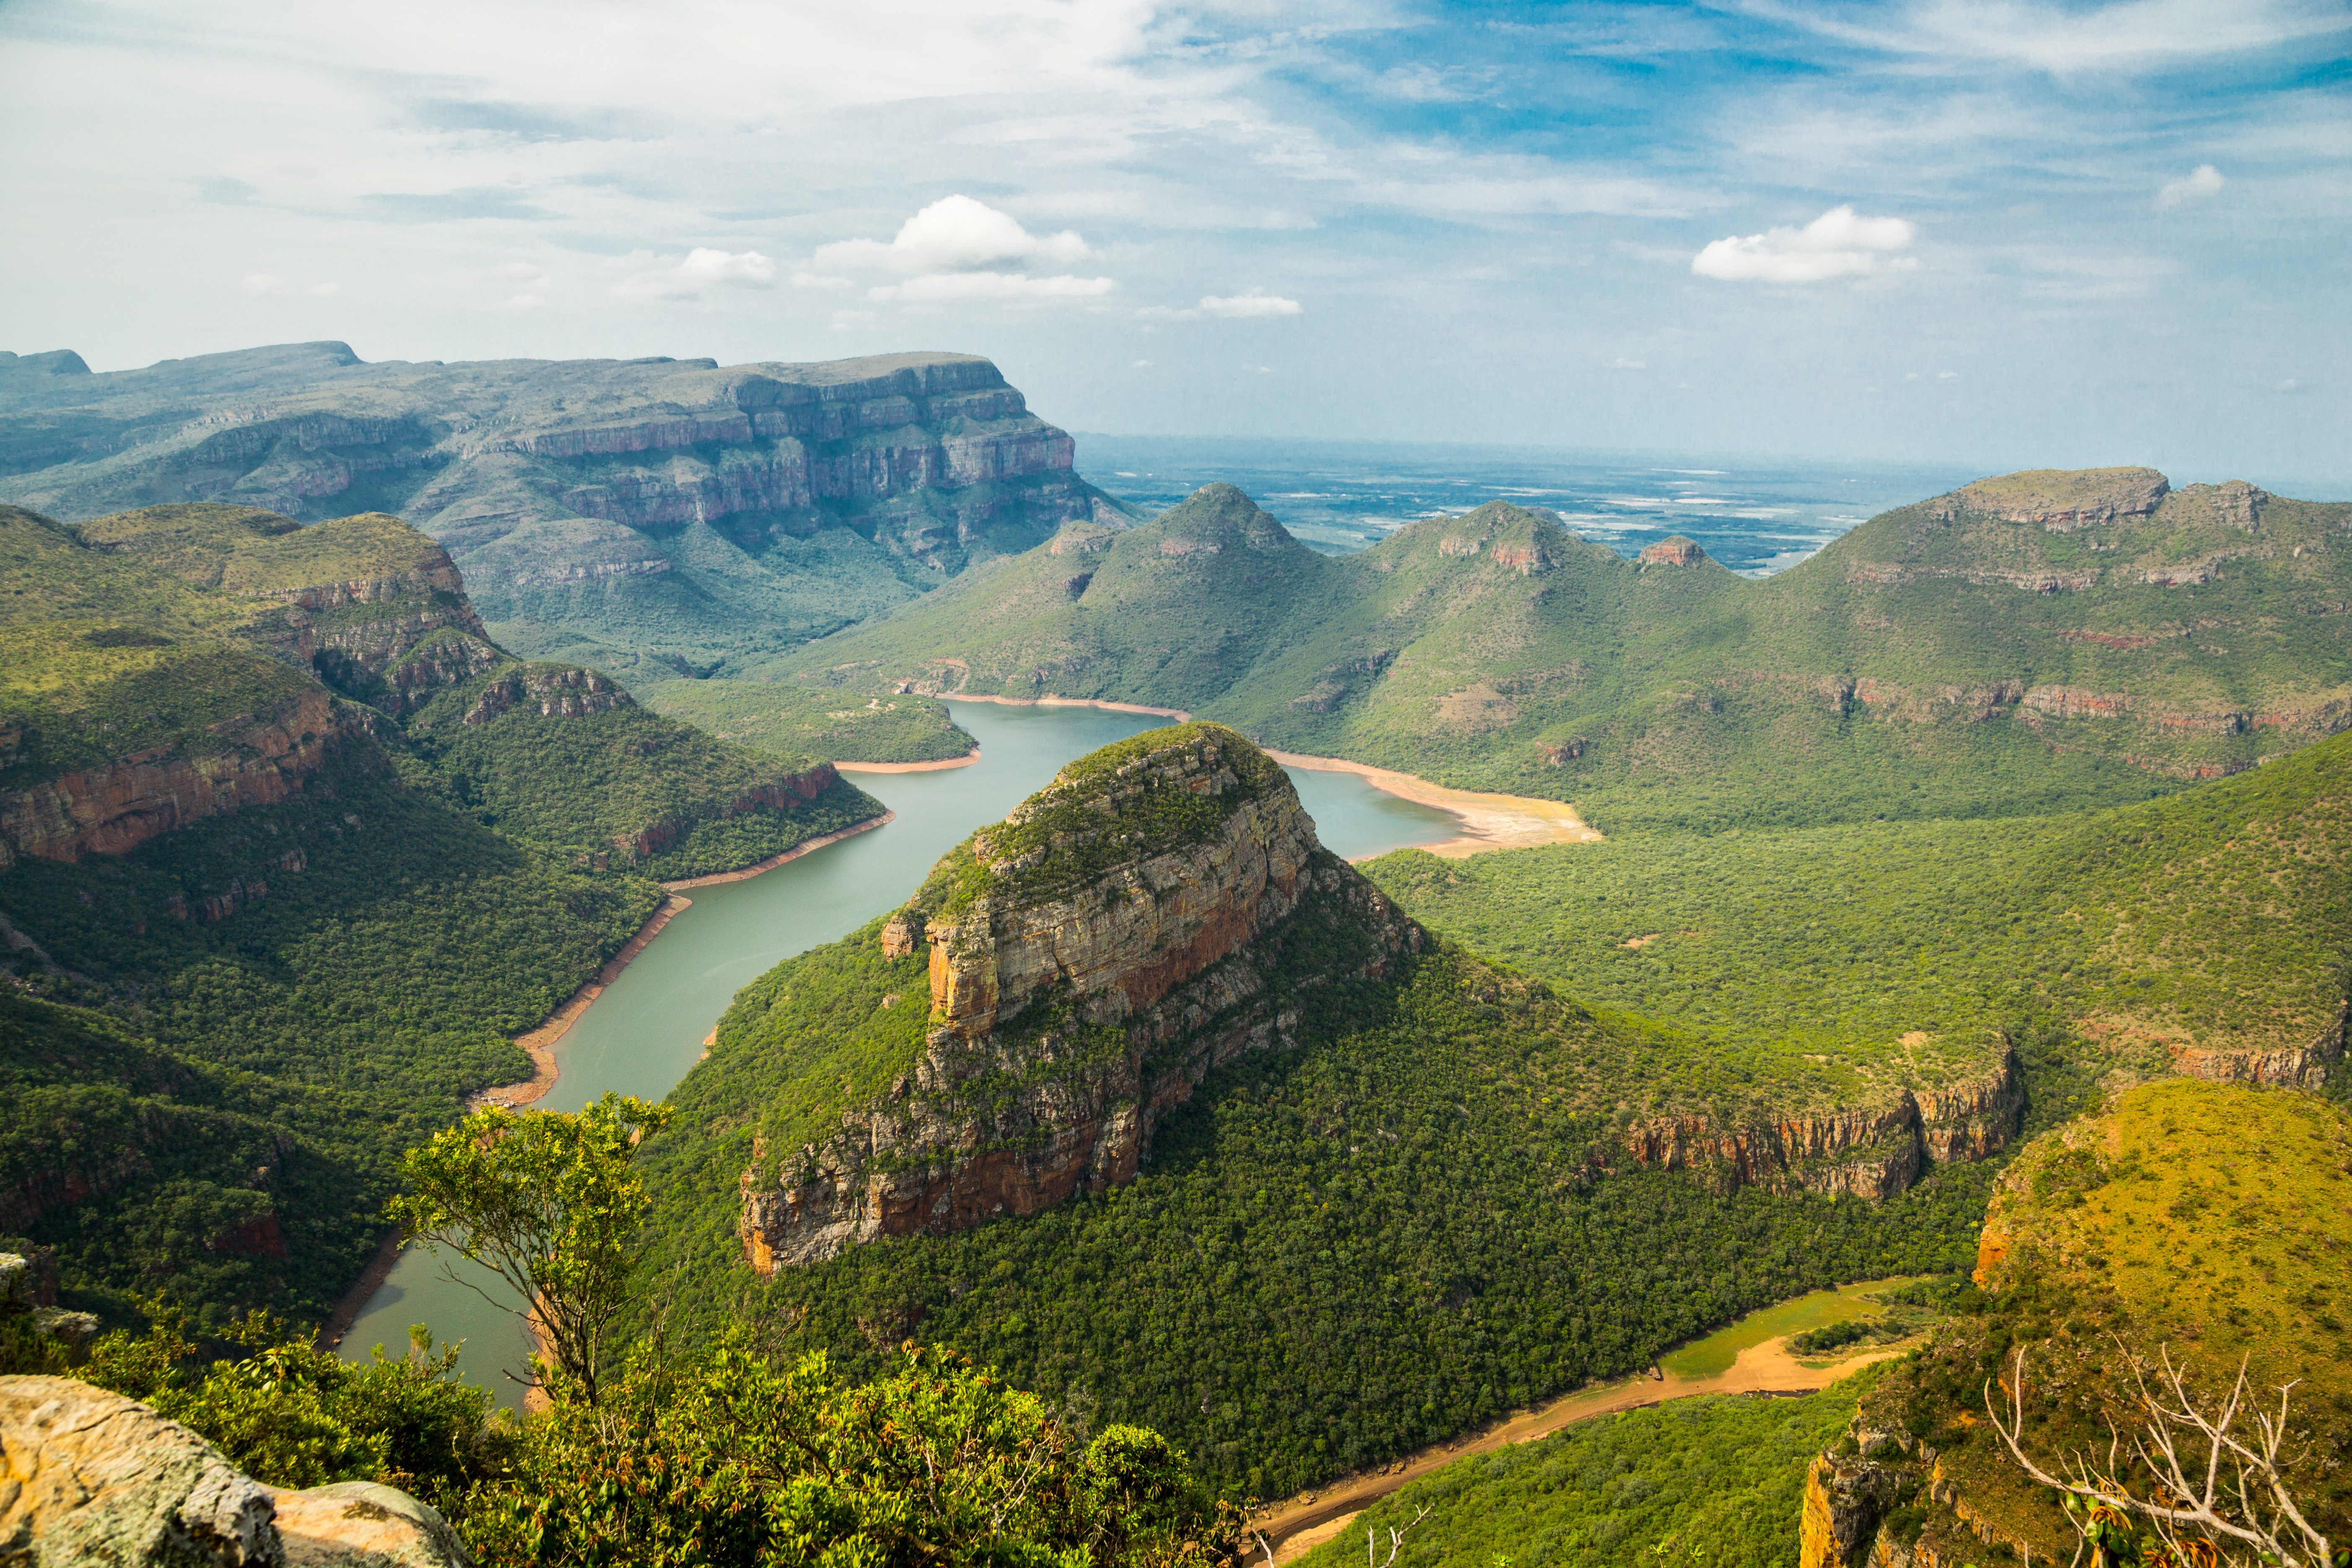 Blyde River Canyon, South Africa - Lina Loos